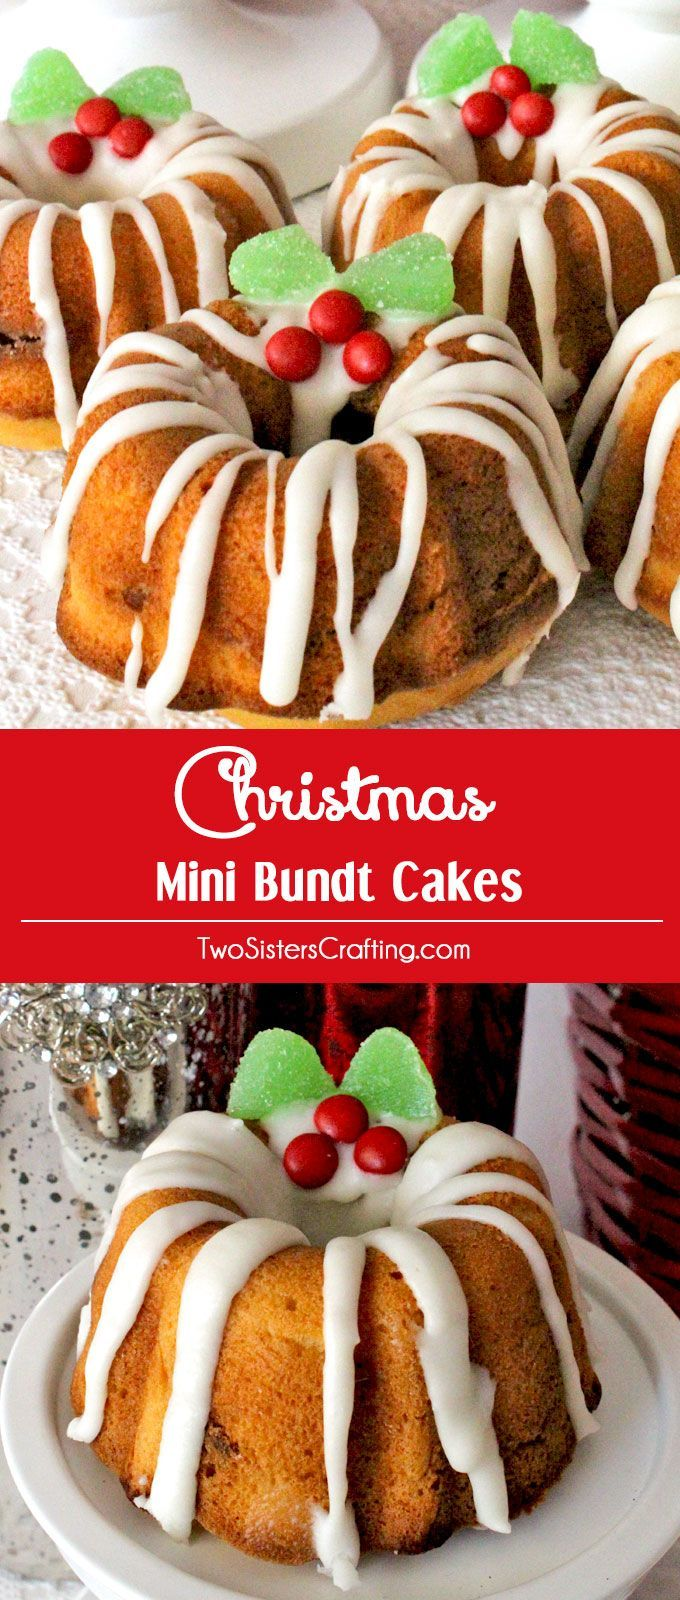 How To Package Mini Bundt Cakes For Gifts